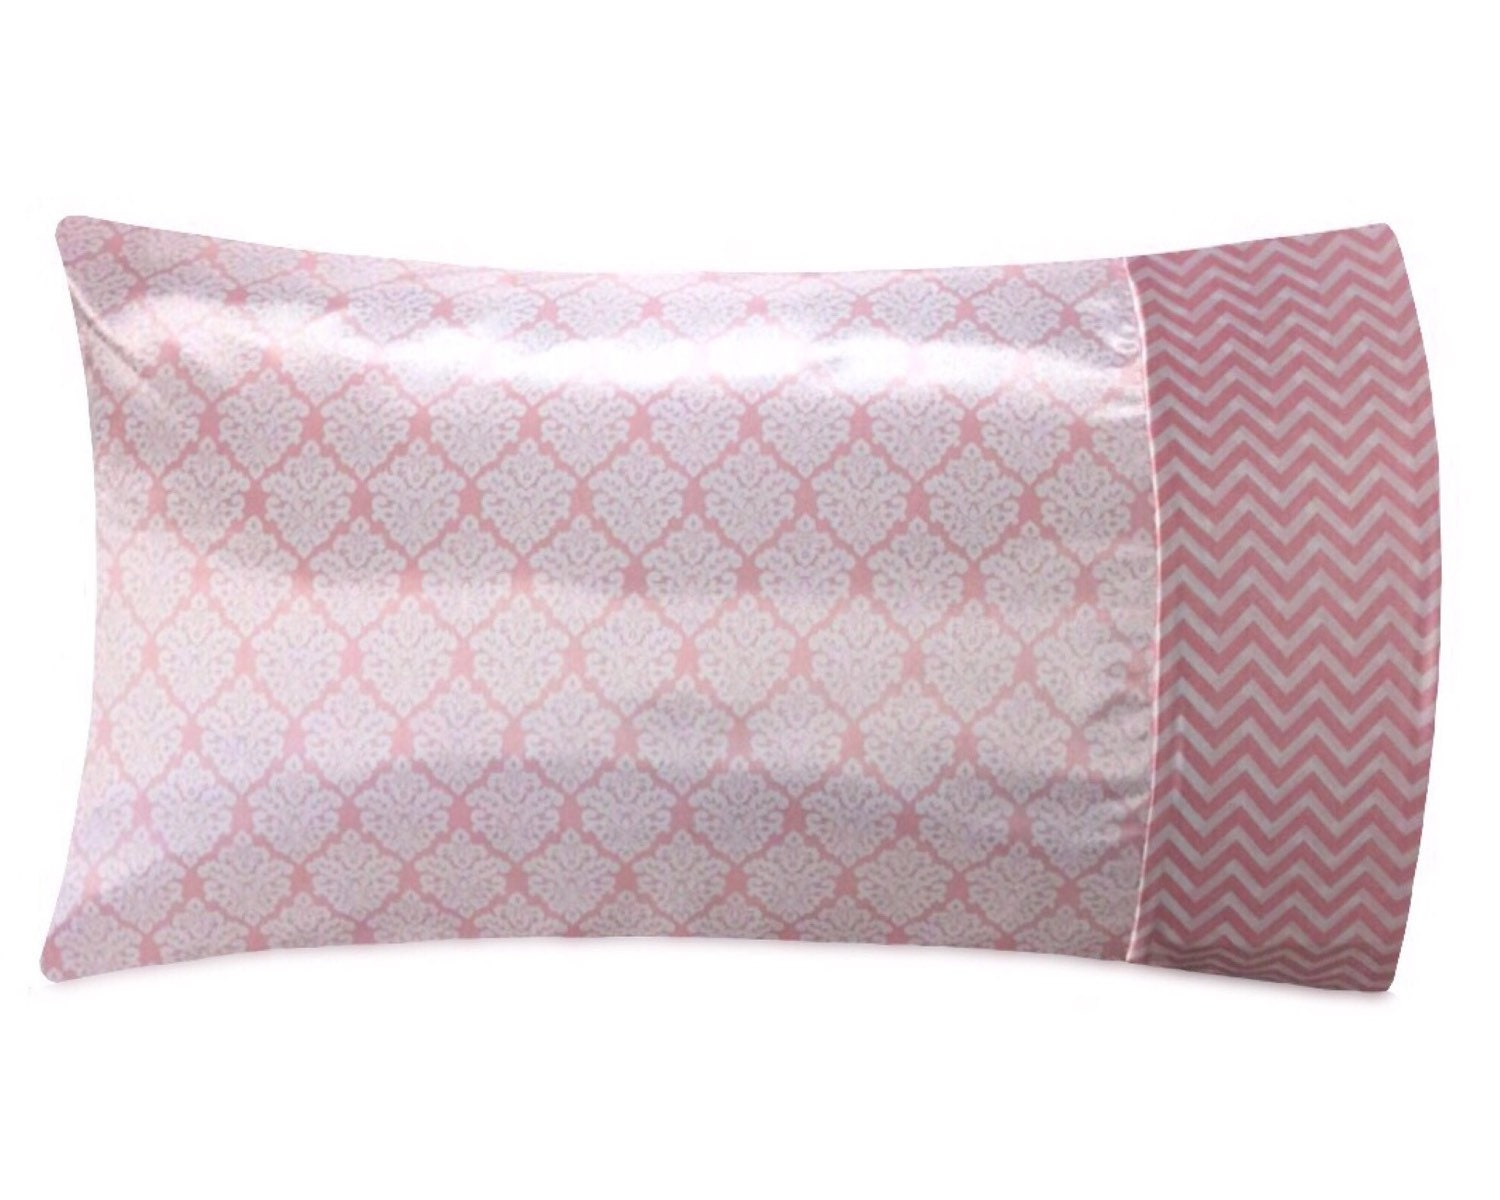 Blush Damask Satin Pillowcase Blush Satin Pillow Case